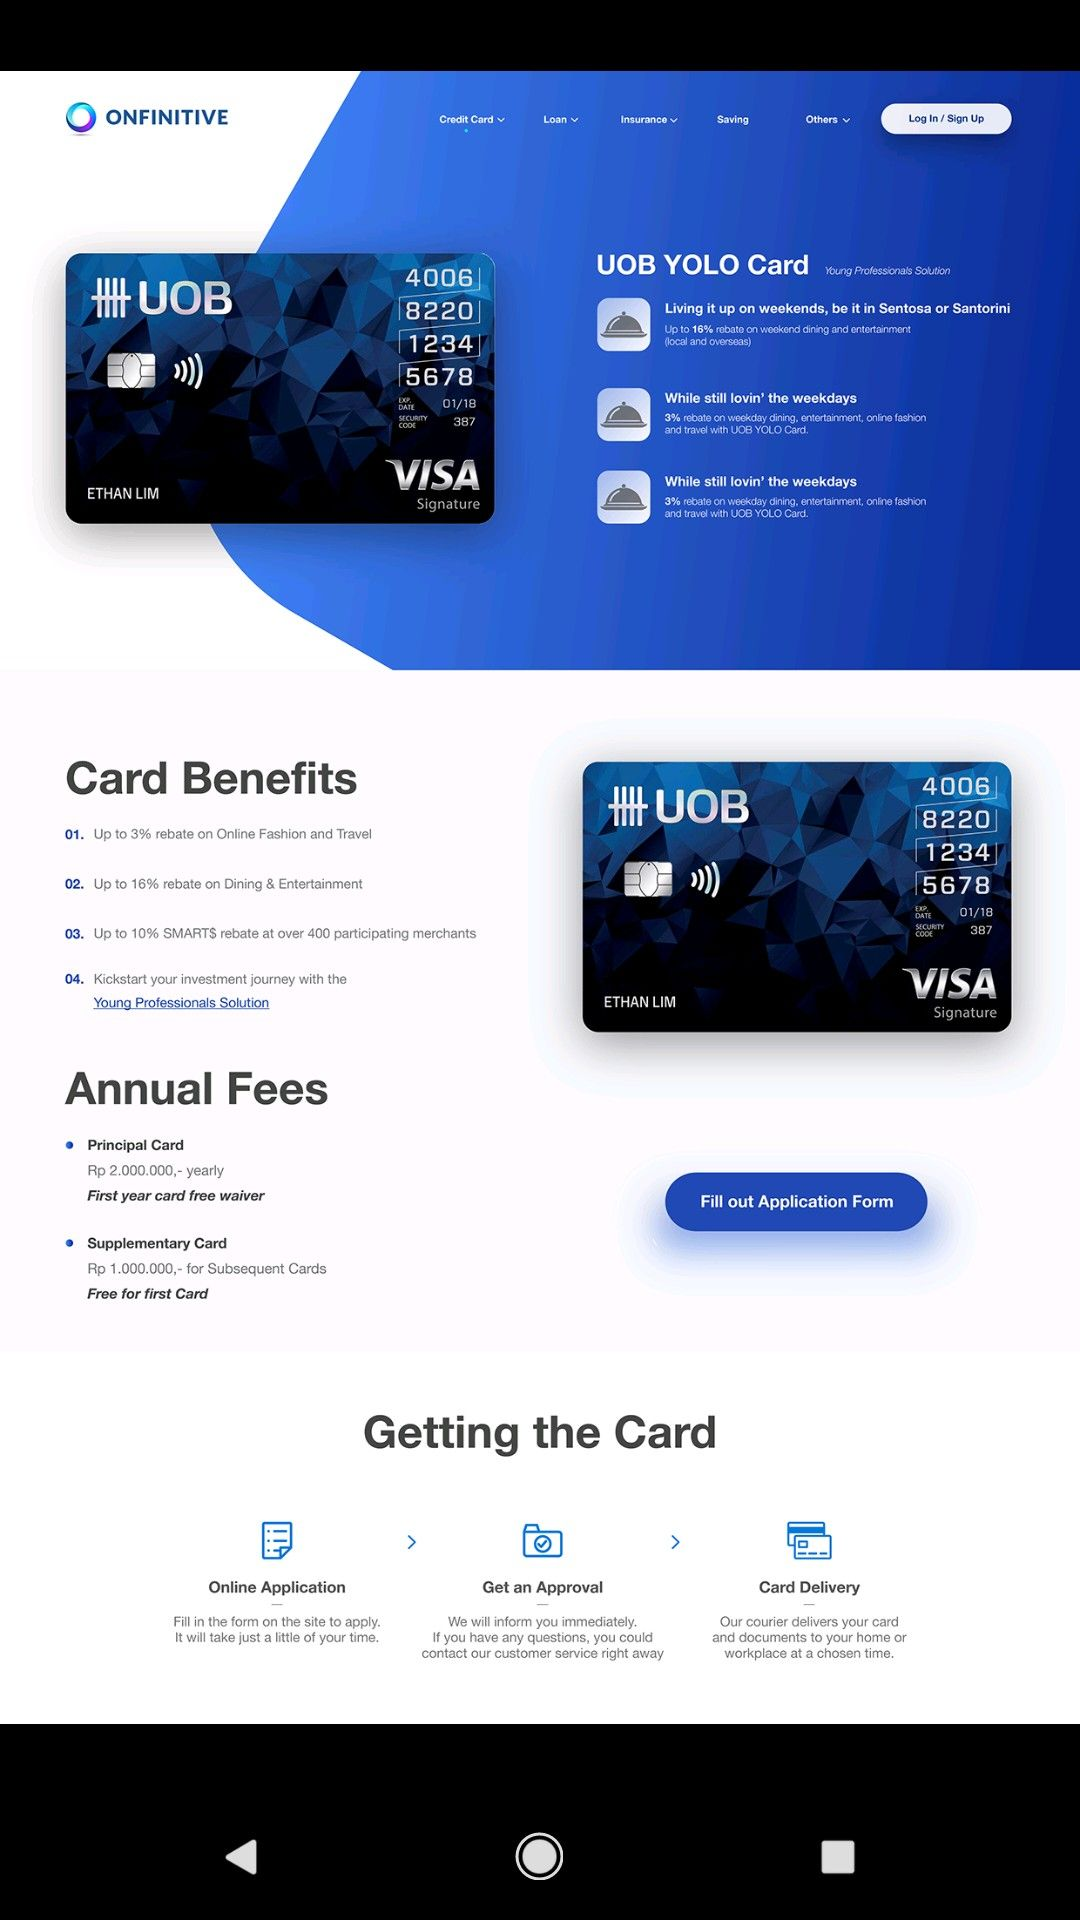 Professional Website Design For A Credit Card Company What Do You Think We Design Qua Credit Card Website Professional Website Design Credit Card Companies